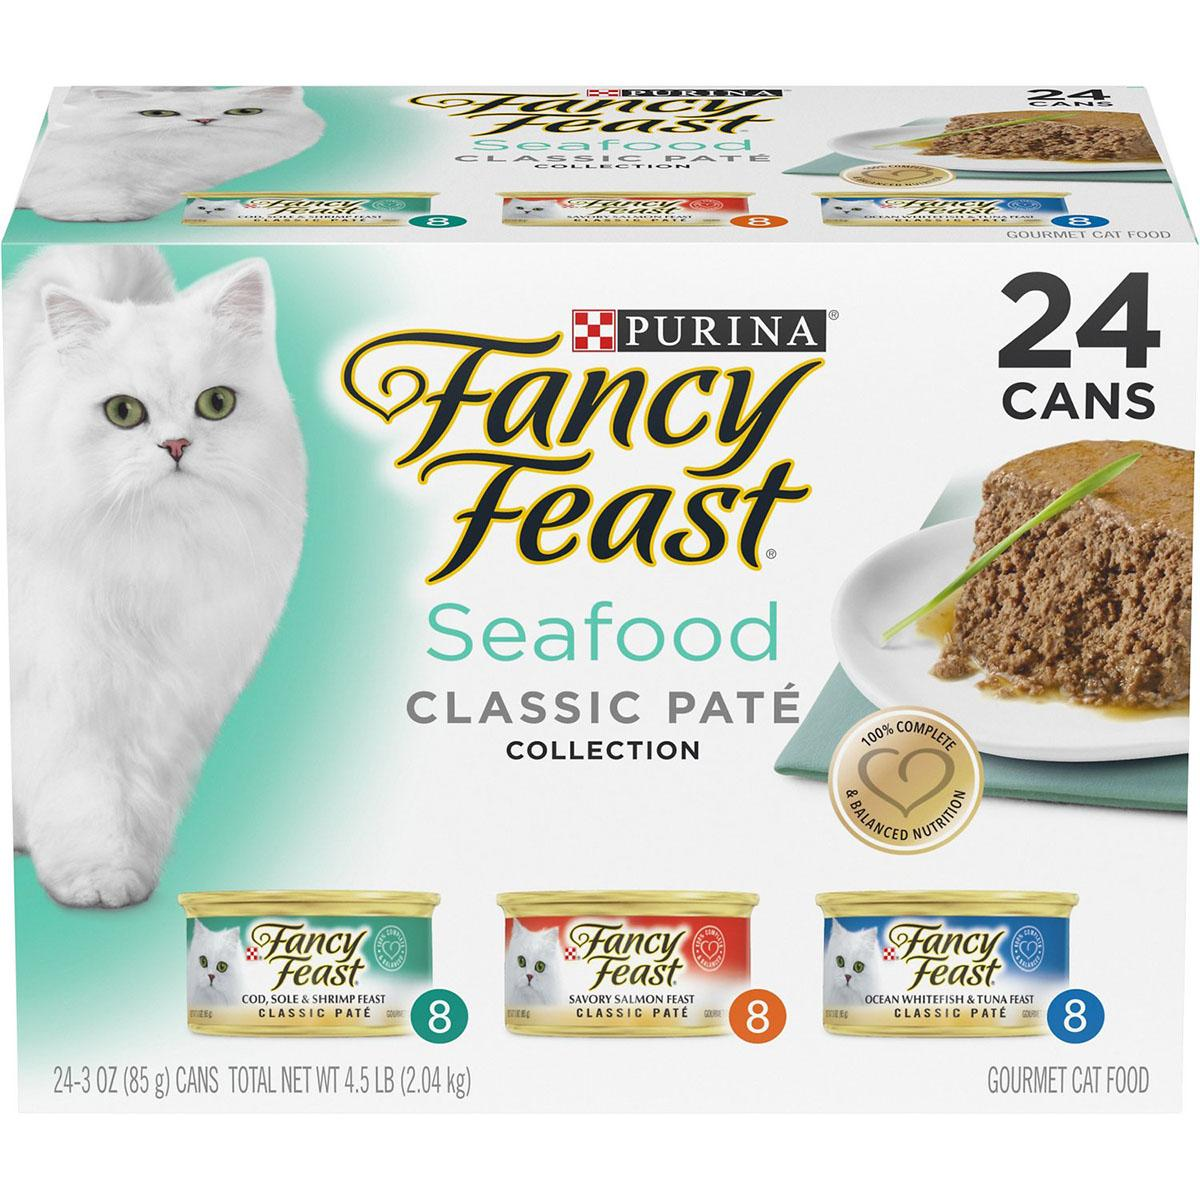 BaxterBoo – Purina Fancy Feast Seafood Classic Paté Canned Cat Food – Variety Pack